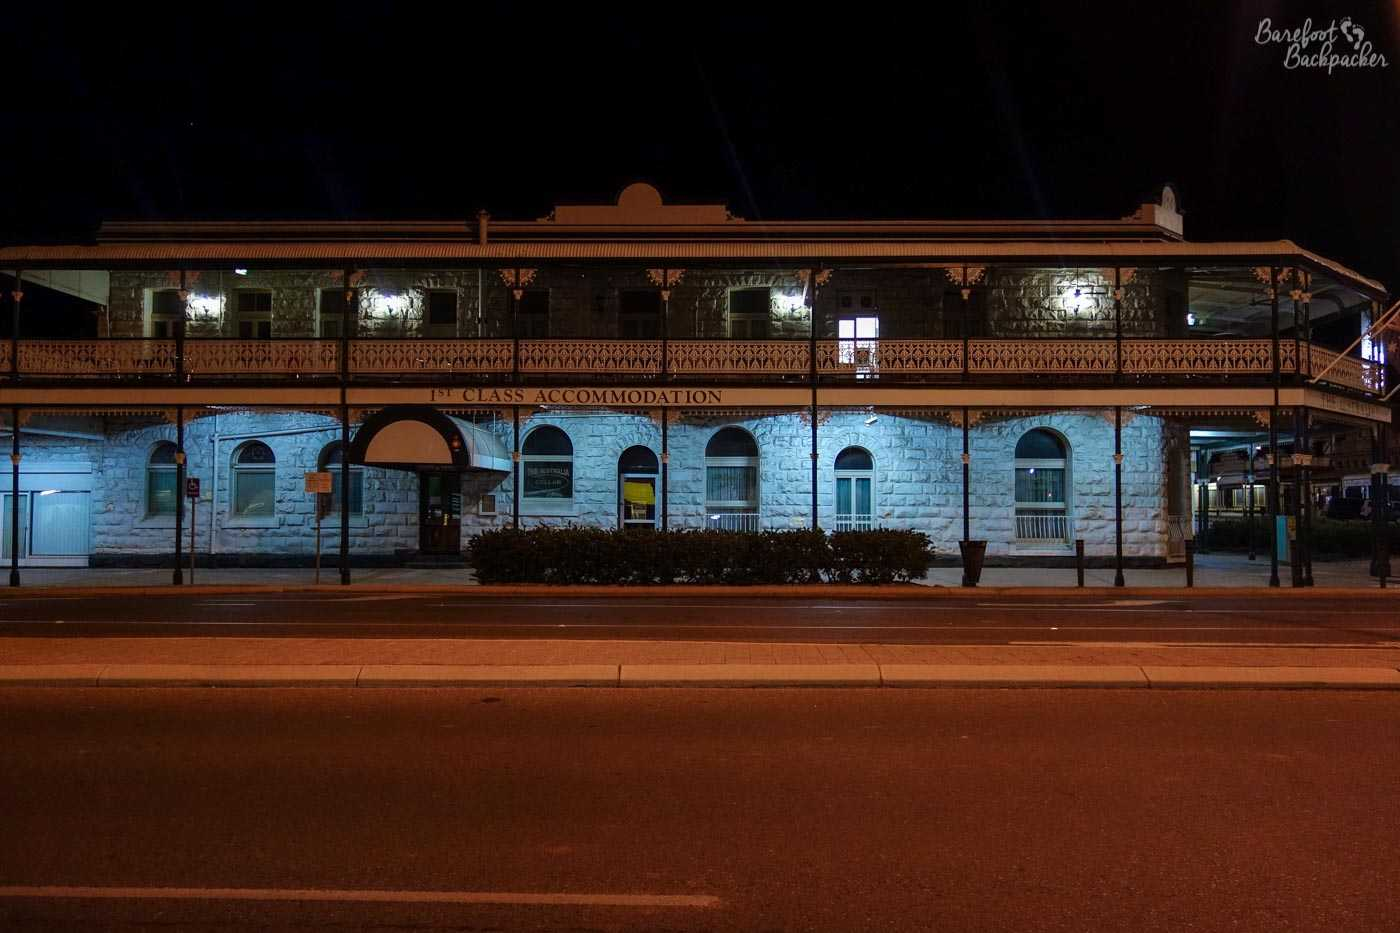 A hotel in Kalgoorlie, over the road. Picture taken at night. White stone walls. It has a balcony type thing attached to its whole upper floor; iron-wrought and see-through, like you find in late 19th-century American buildings.